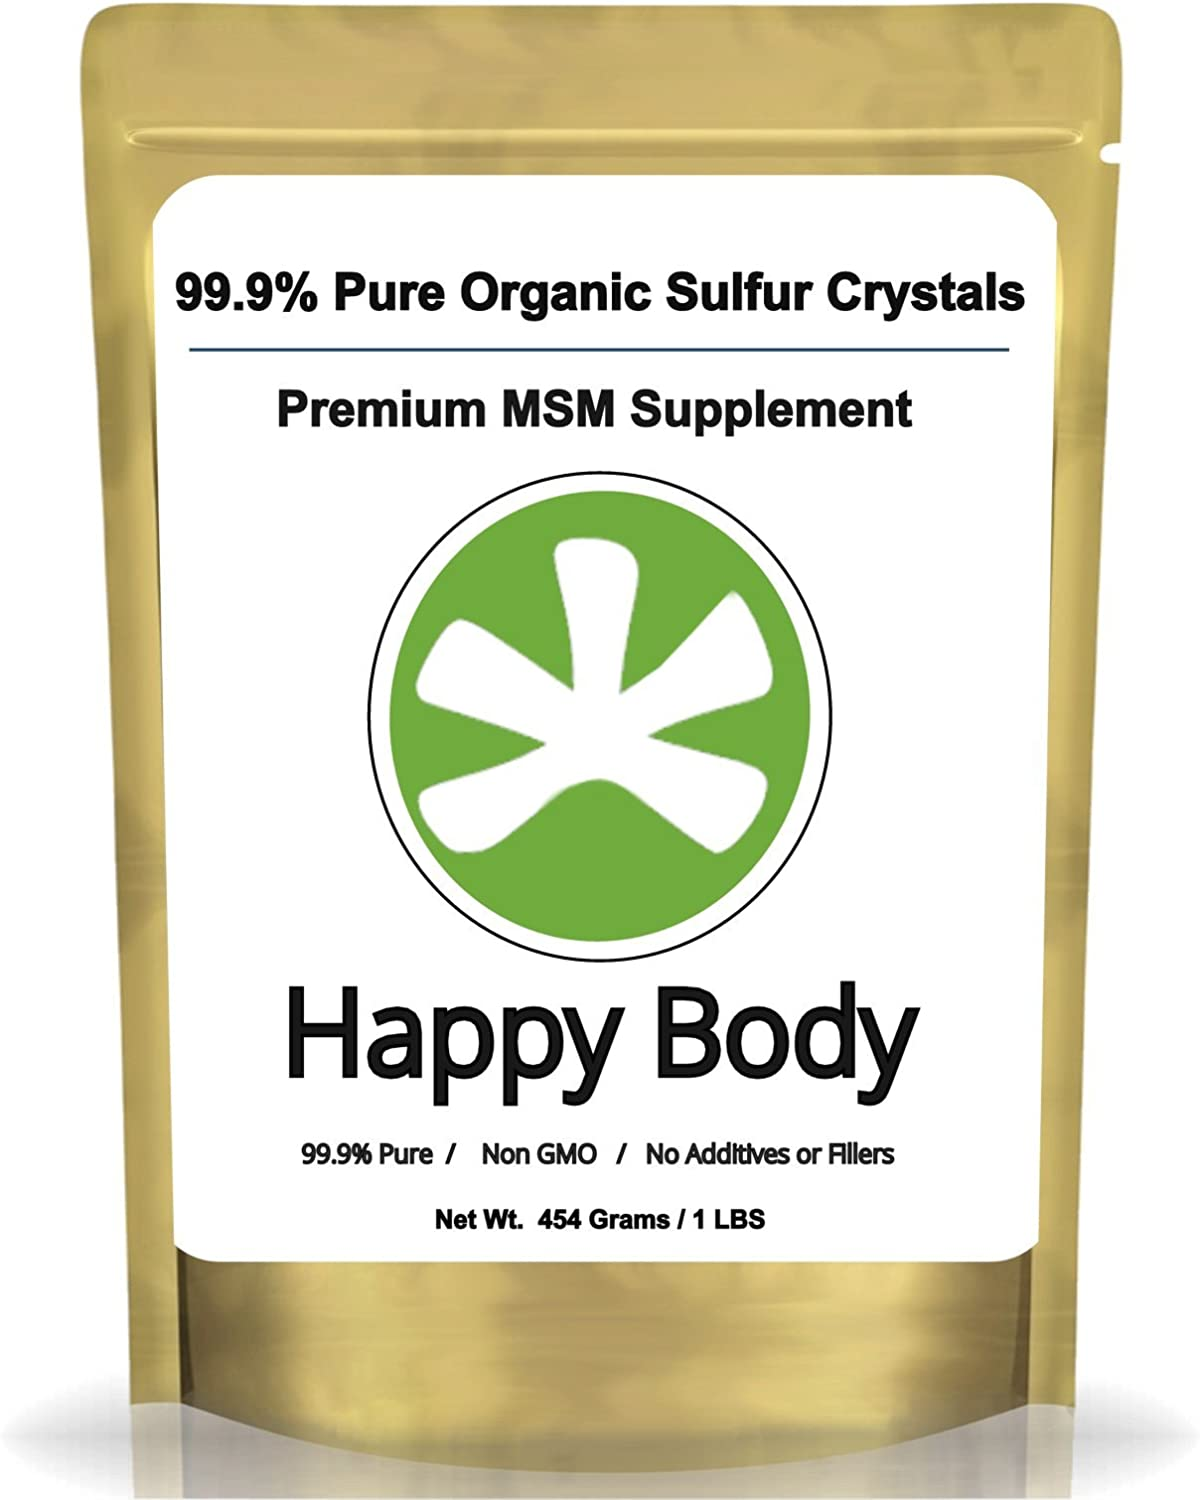 Organic Sulfur Crystals, 99% Pure MSM Crystals, Premium MSM Supplement - 1 LBS Pack